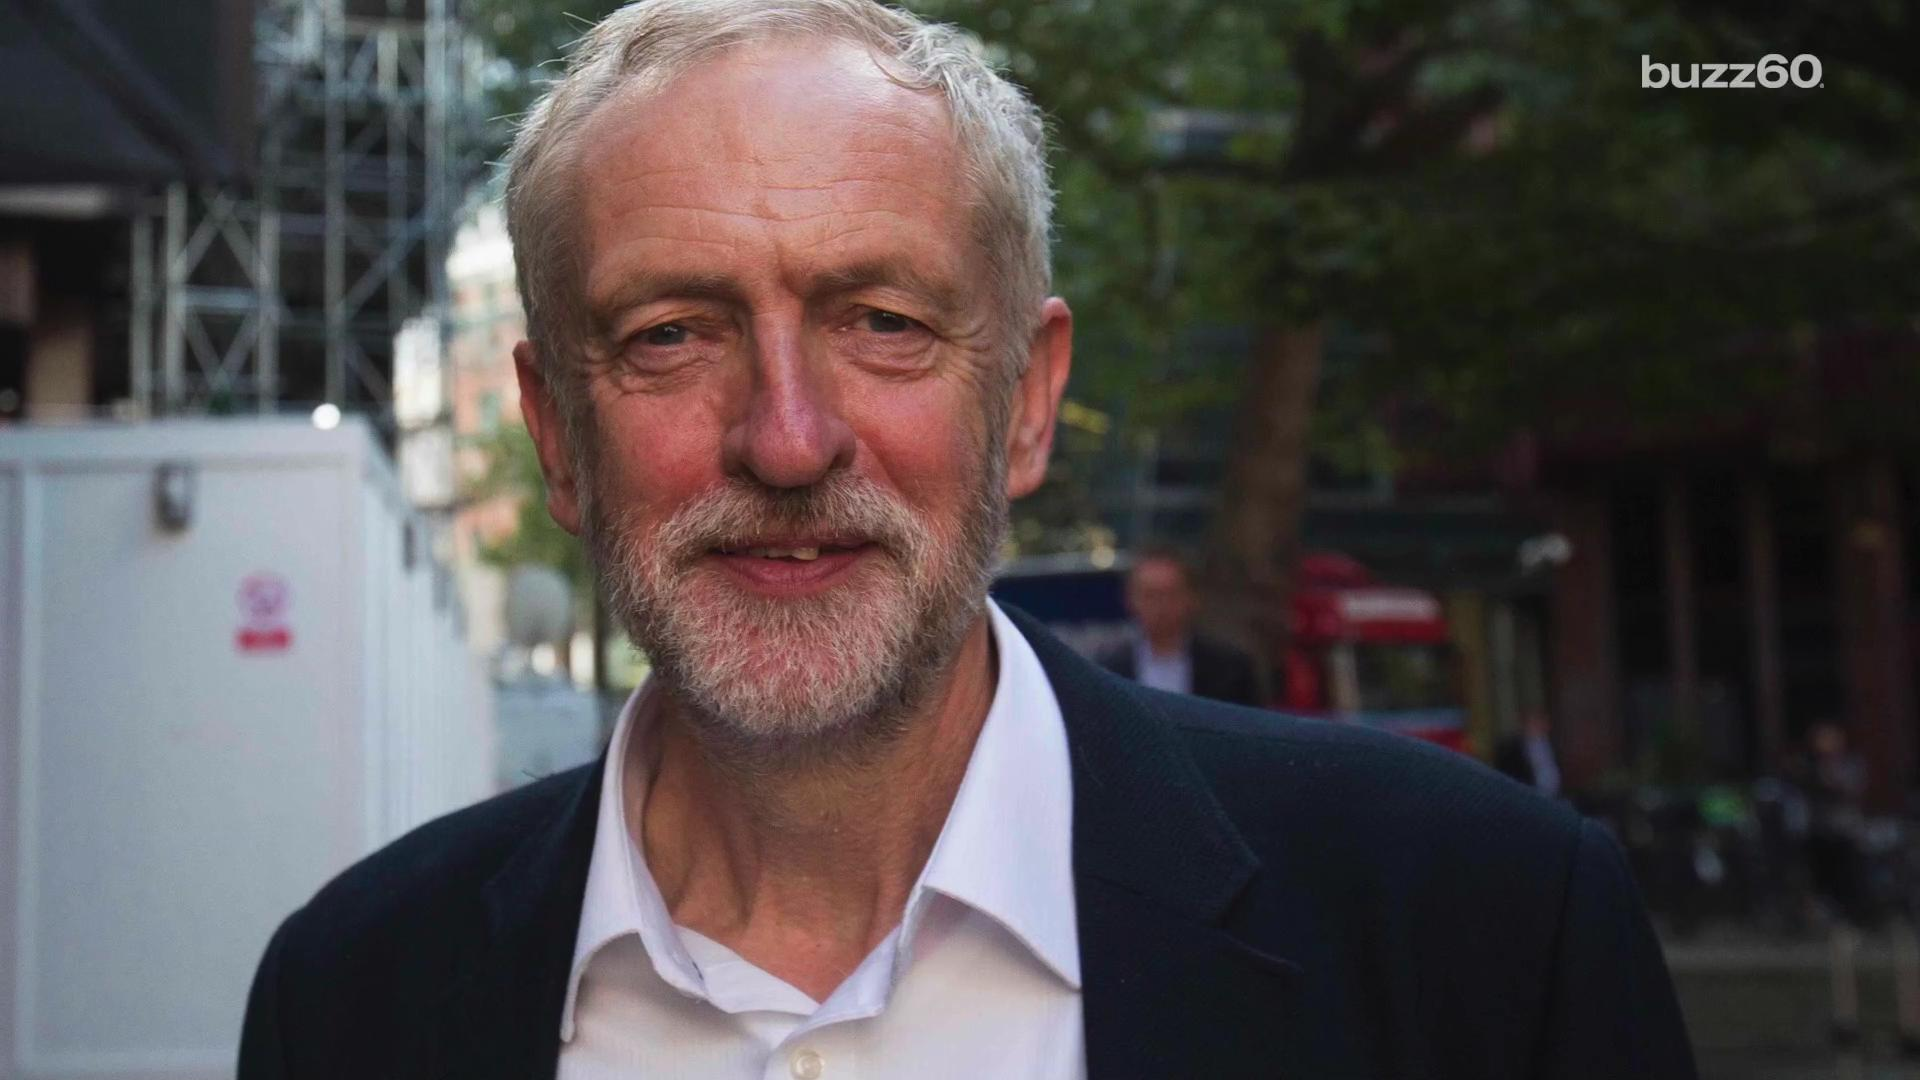 UK's new Labour Party leader looks like Obi-Wan Kenobi